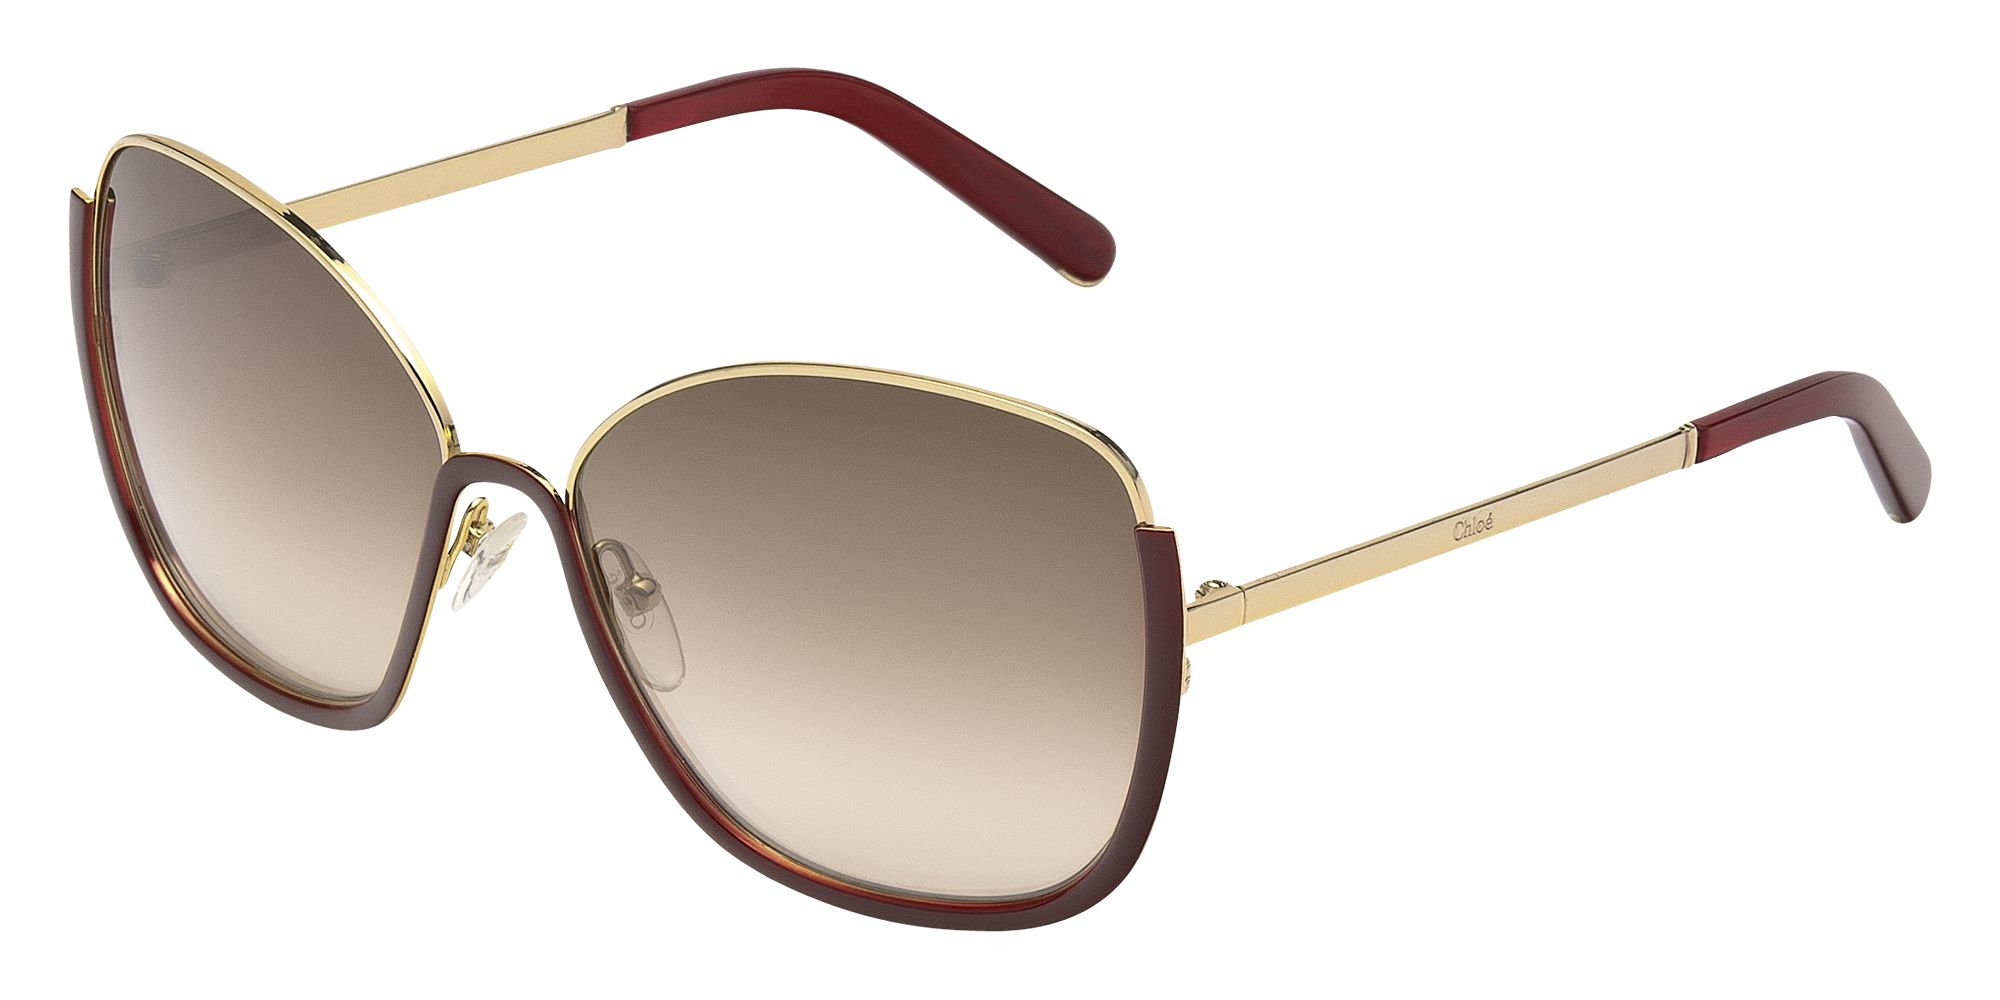 "<strong>Chloe</strong> sunglasses, $346, <a href=""http://marchon.com/HTML/chloe.asp#"">marchon.com</a>."